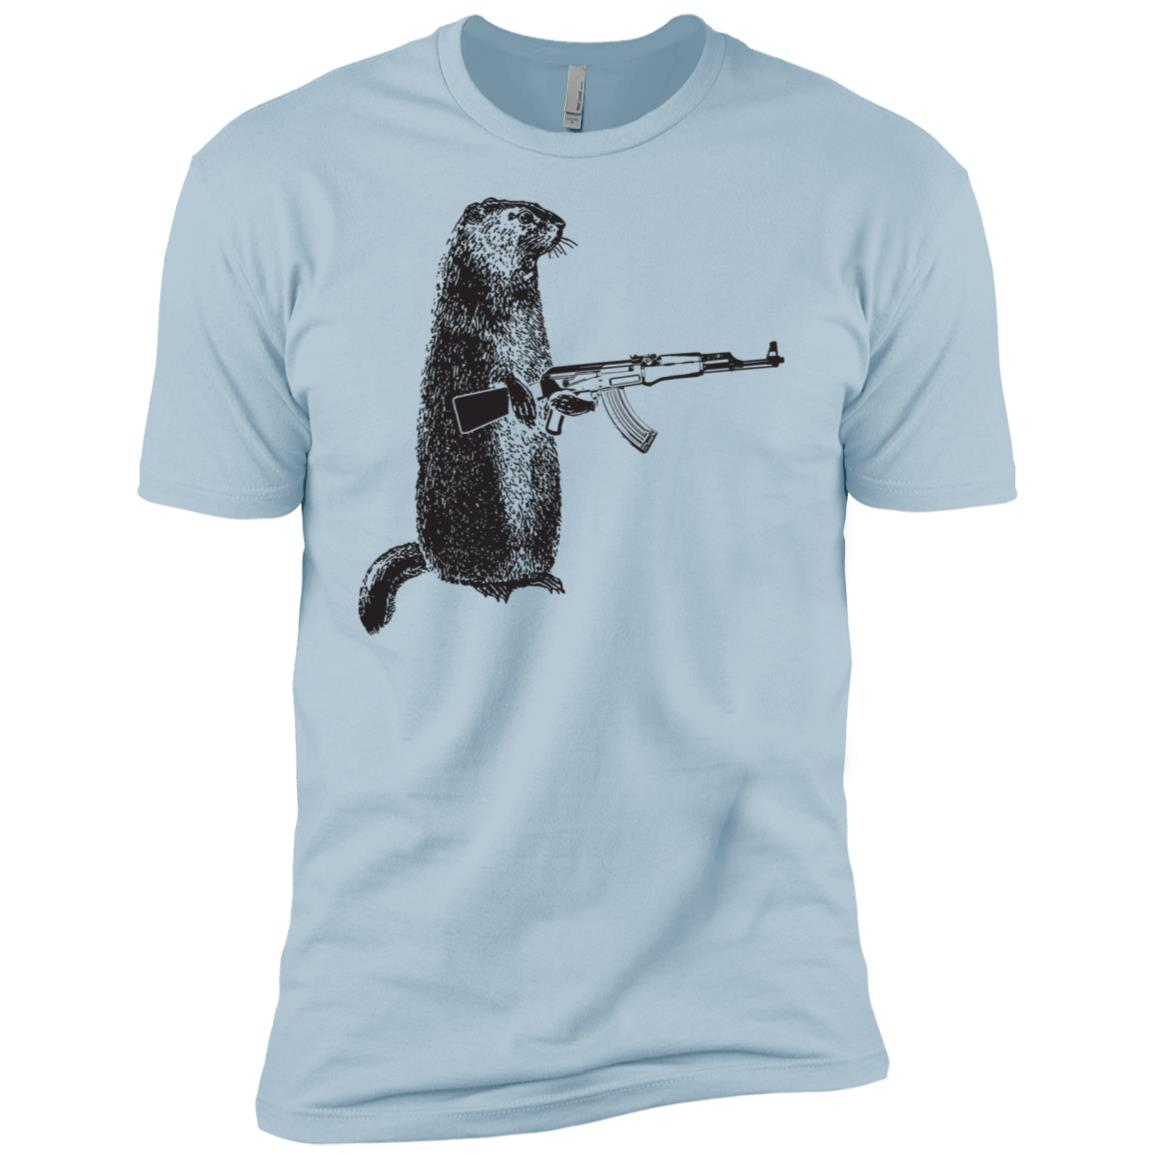 Hunting Woodchuck Ak-47 Gun groundhog funny tee Men Short Sleeve T-Shirt